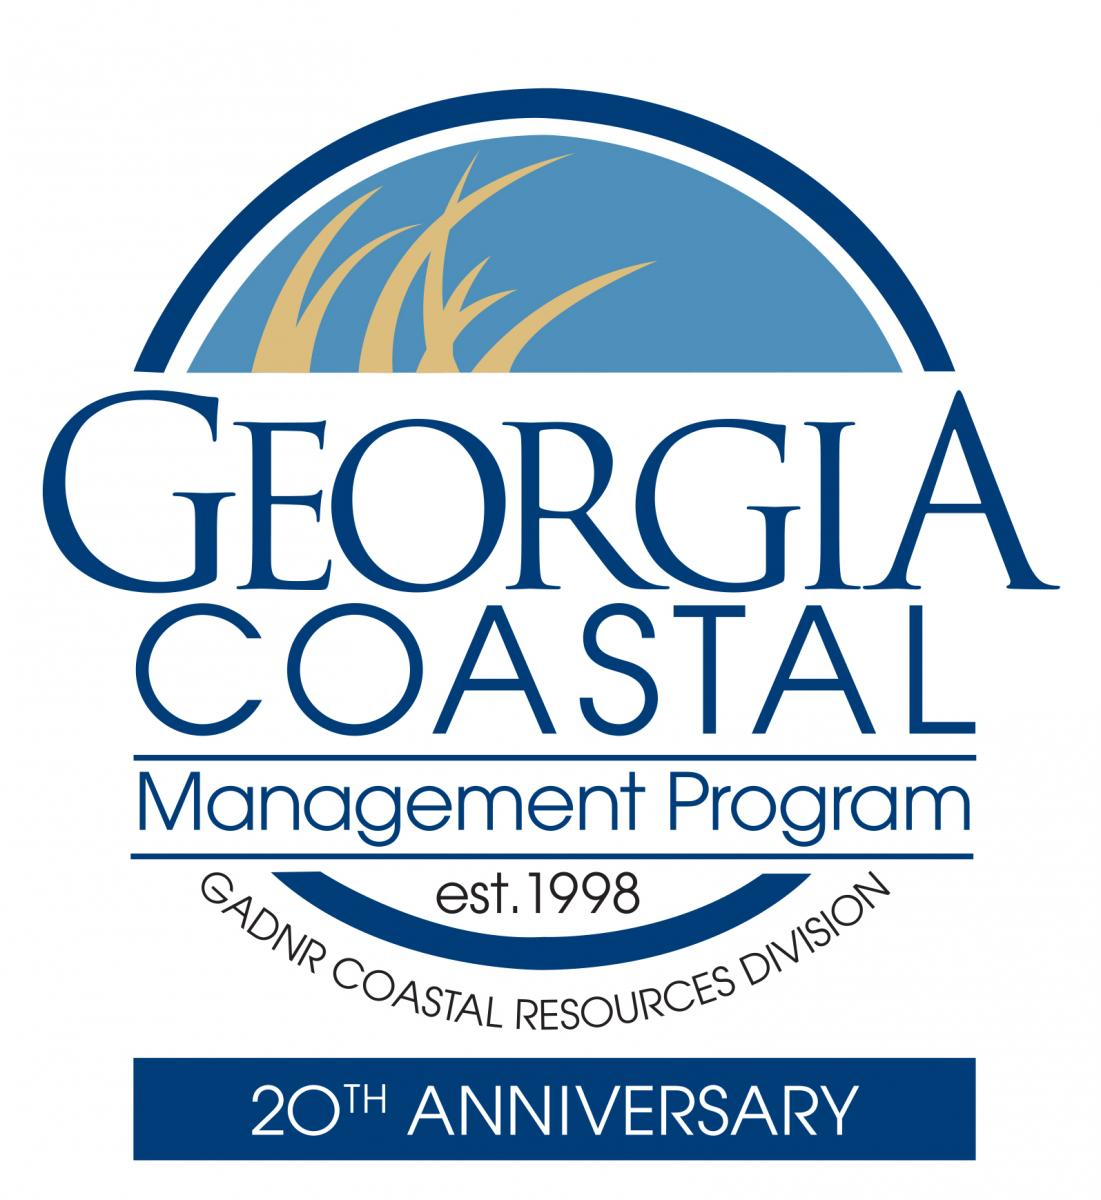 Georgia Coastal Management Program Logo